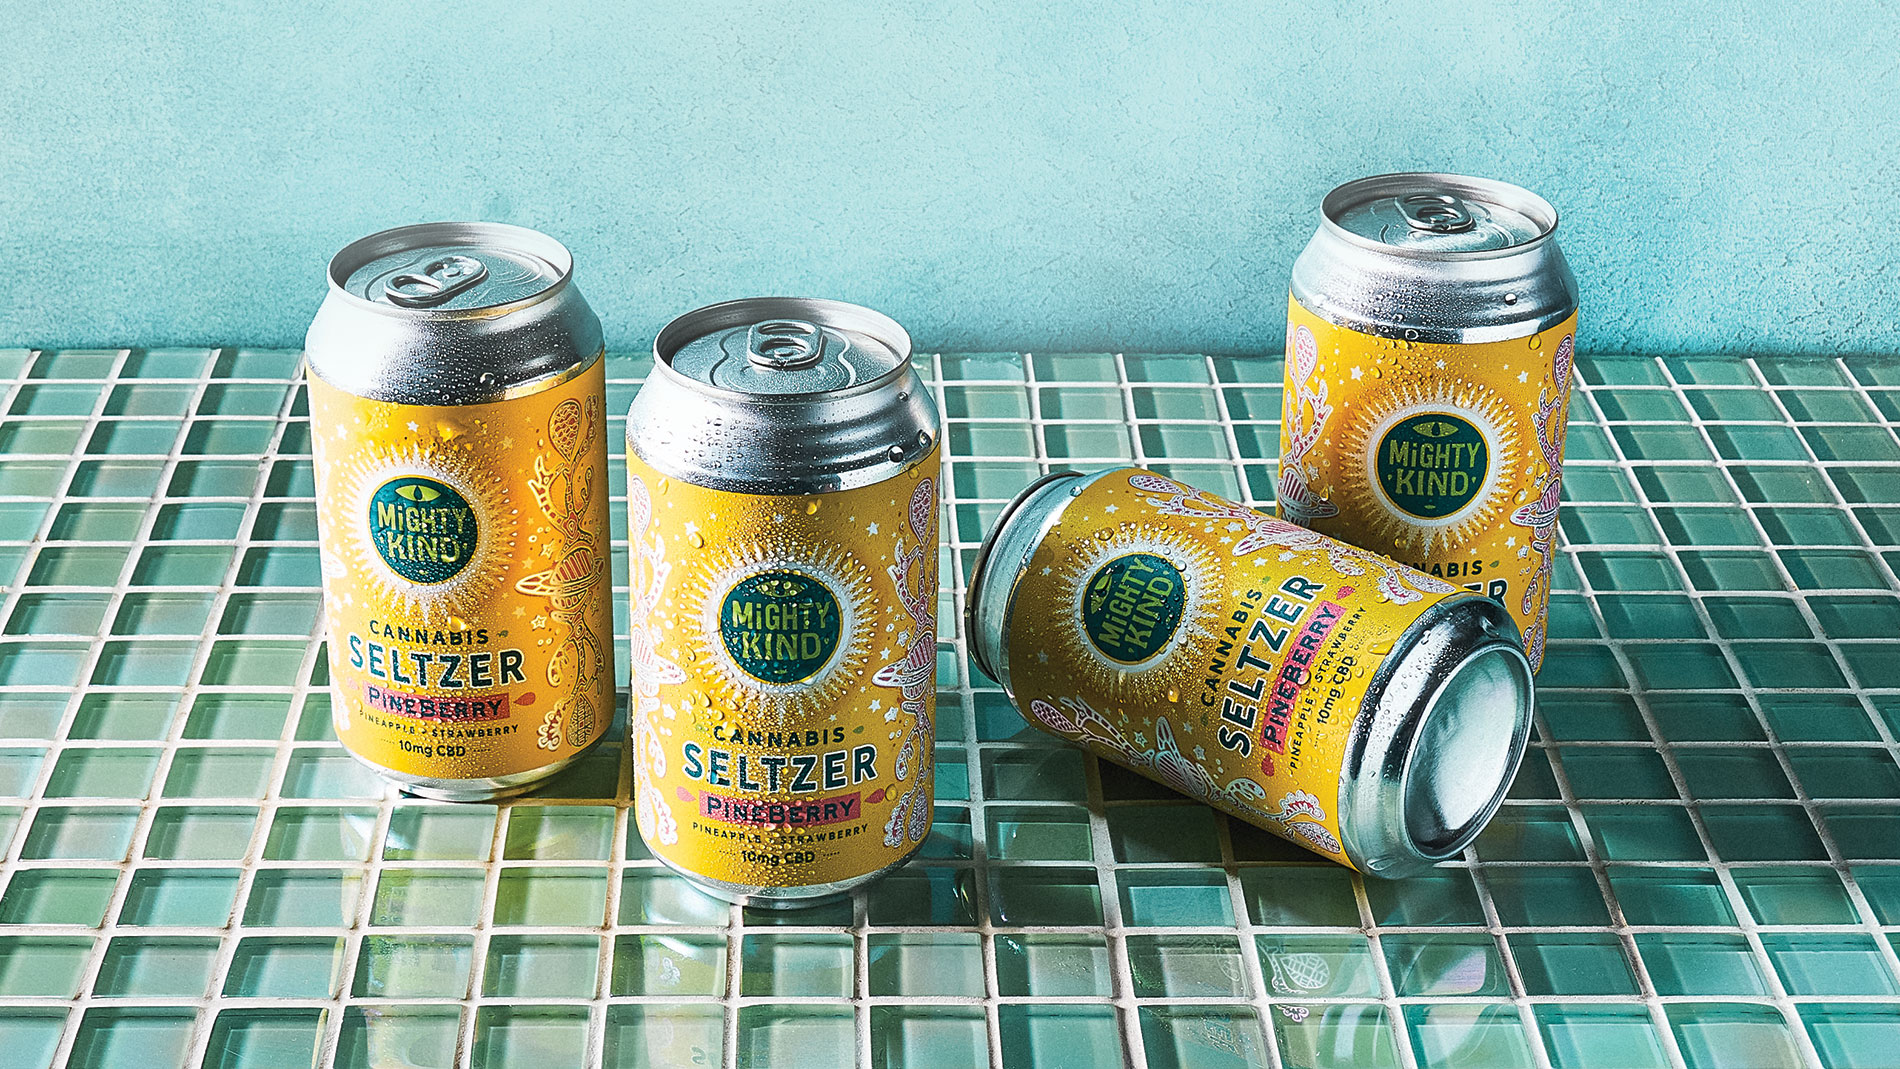 Mighty Kind Cannabis Pineberry Seltzer